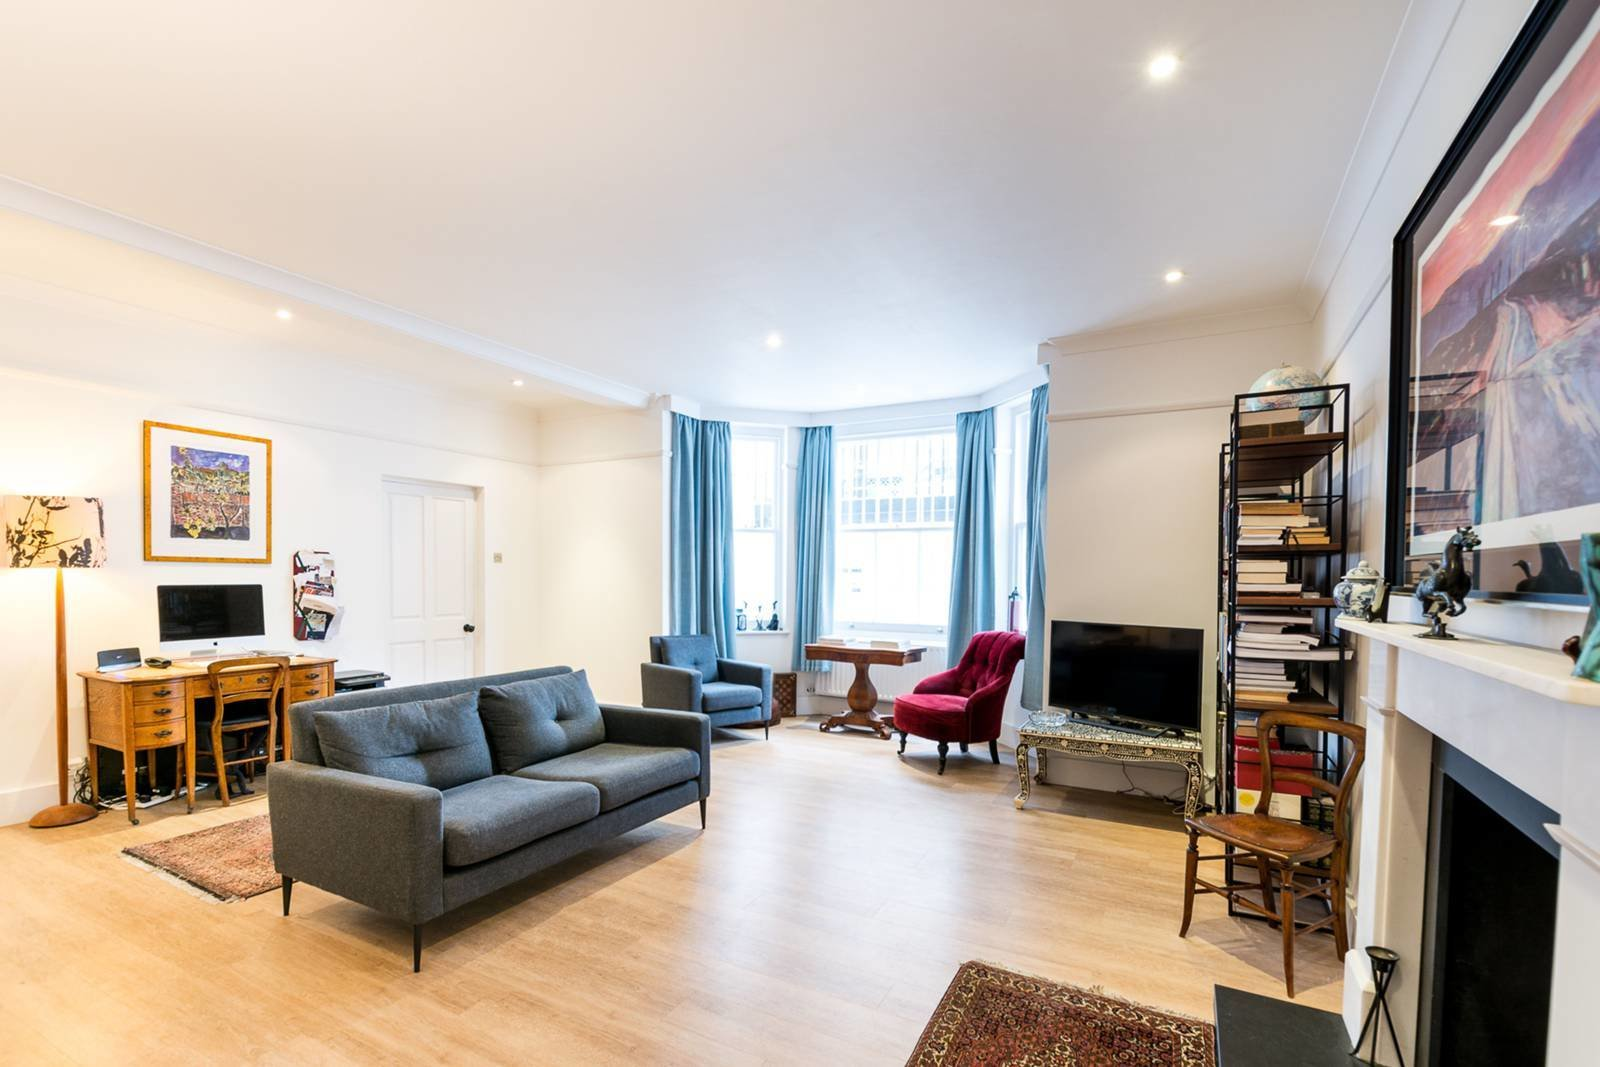 Best 1 Bedroom Flat For Sale In Queens Gate Gardens South Kensington Sw7 London With Pictures Original 1024 x 768